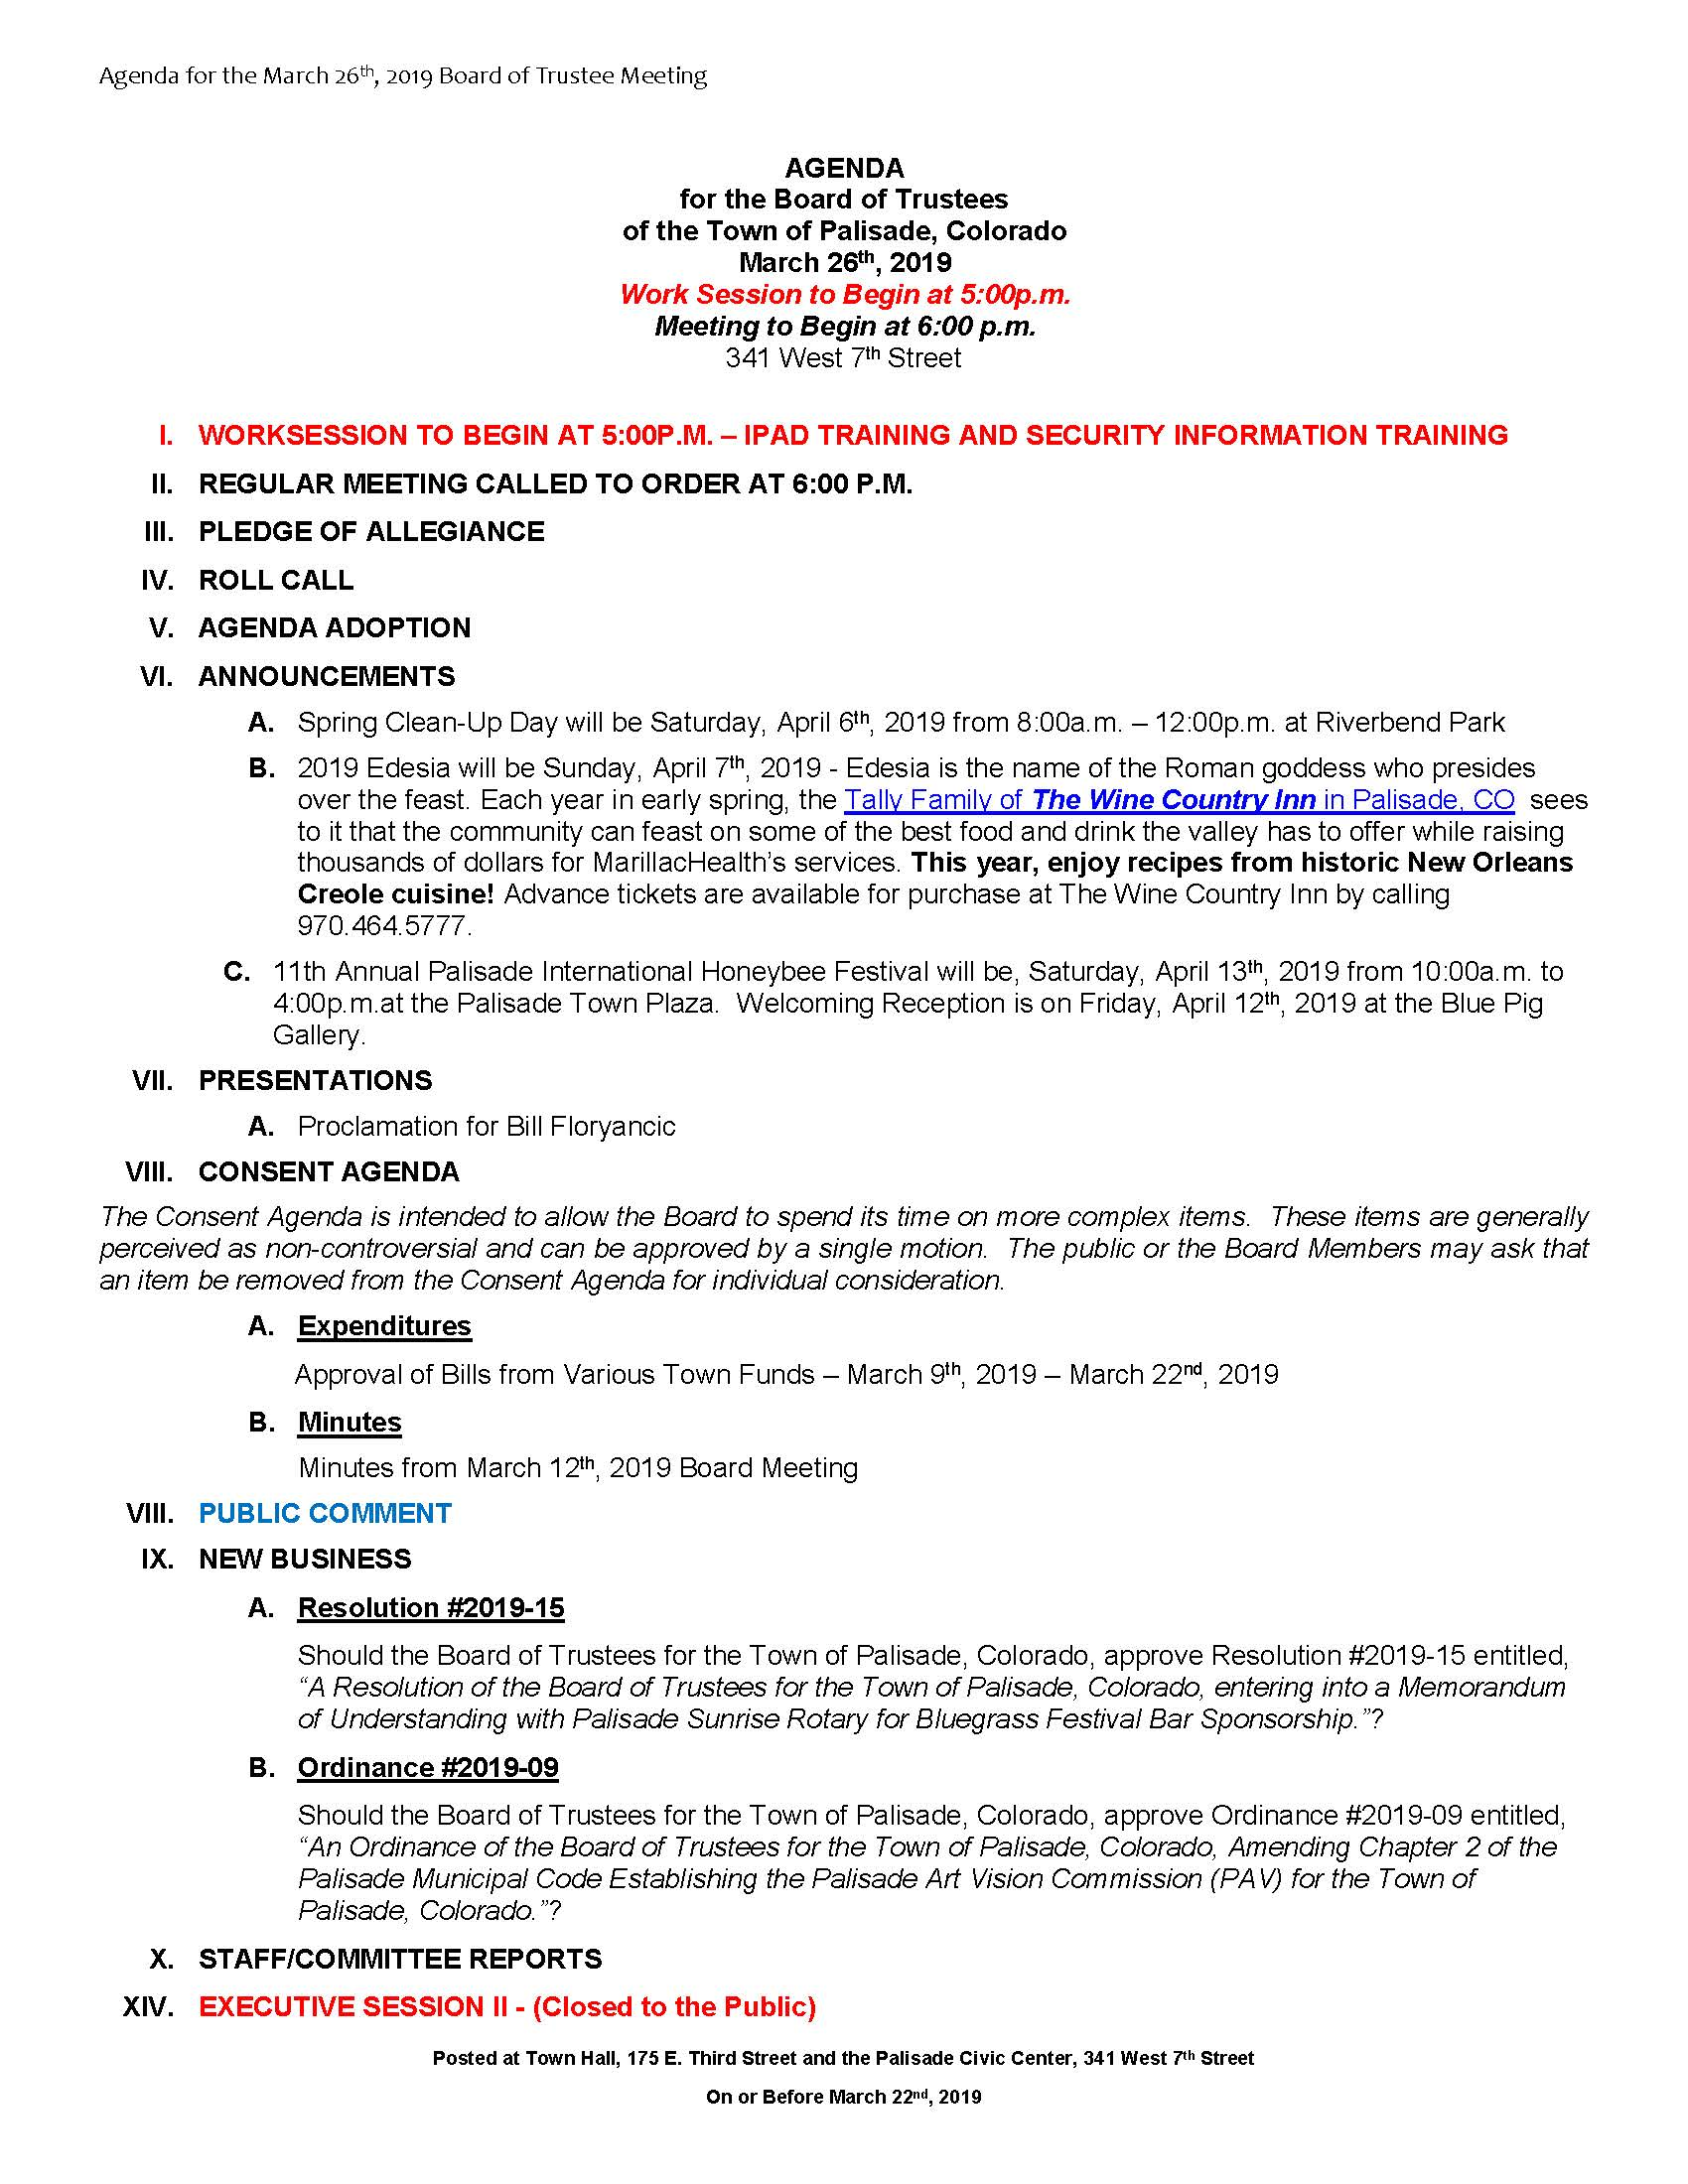 March 26th 2019 Board Meeting Agenda Page 1